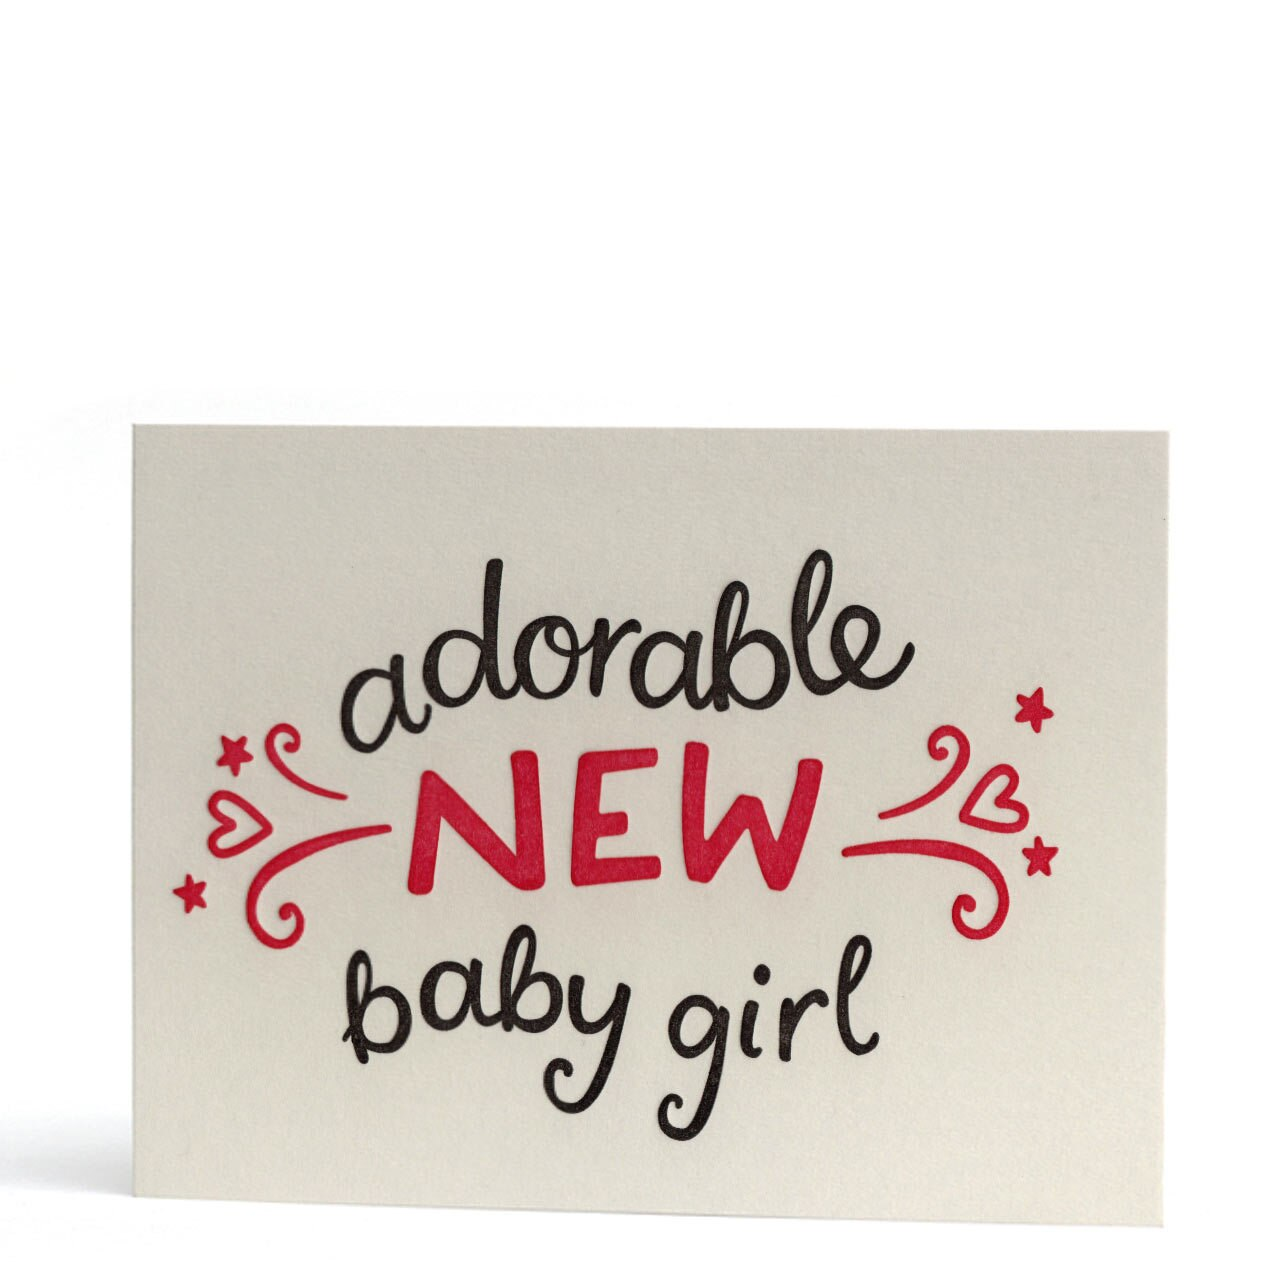 Adorable Baby Girl Letterpress Greeting Card